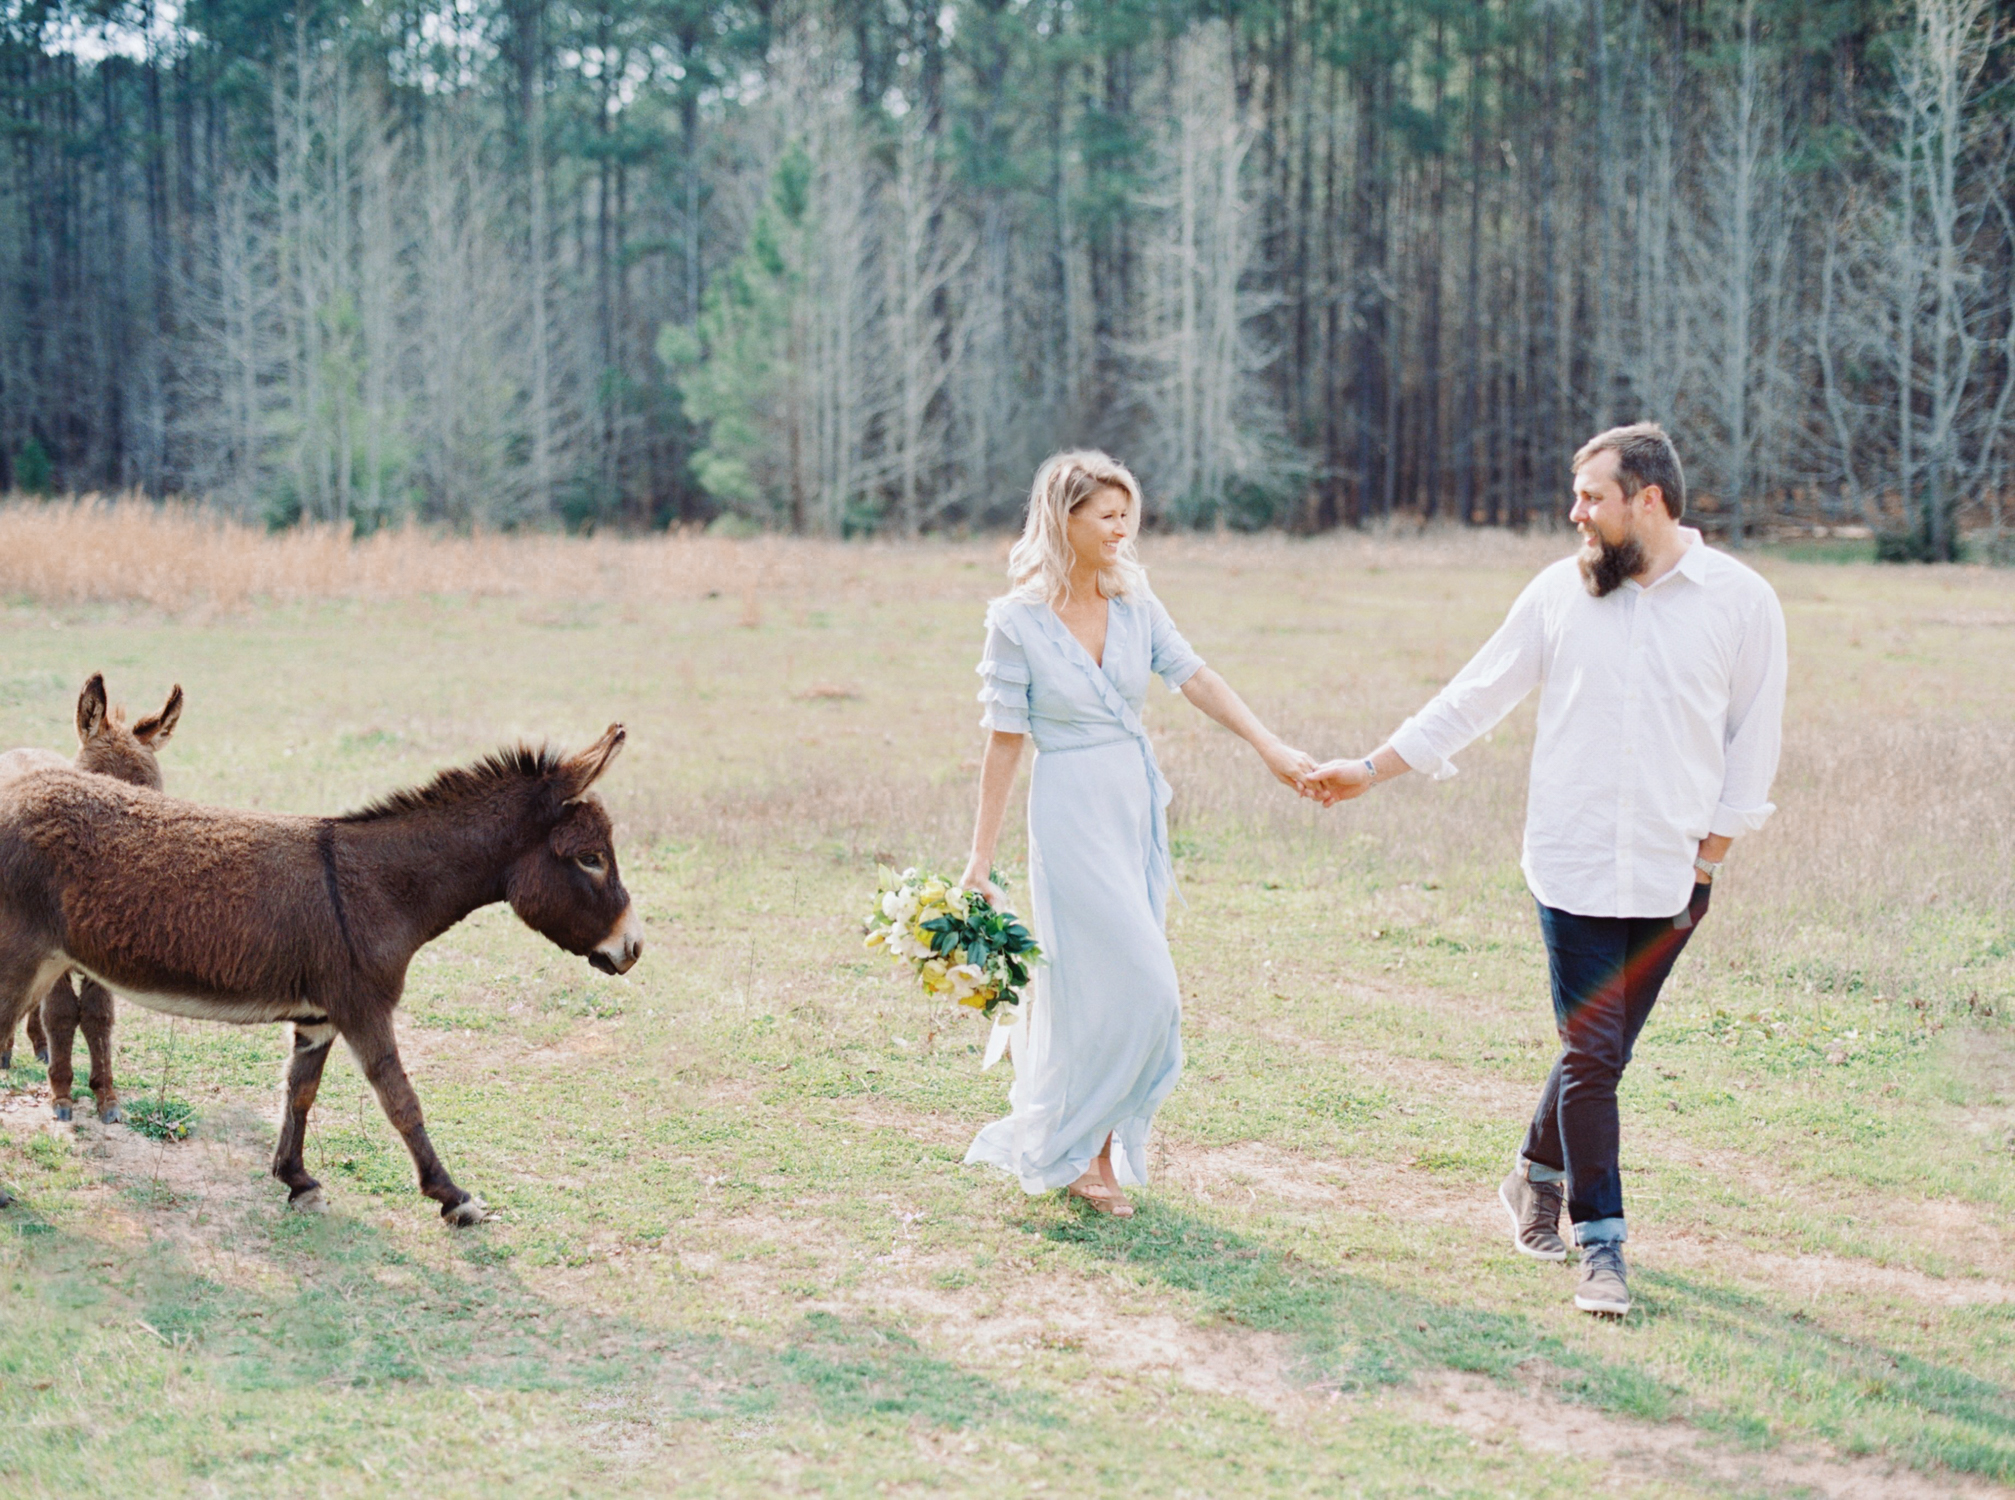 hannah forsberg atlanta wedding photographer whitney spence anniversary session with miniature donkeys and horse-12.jpg